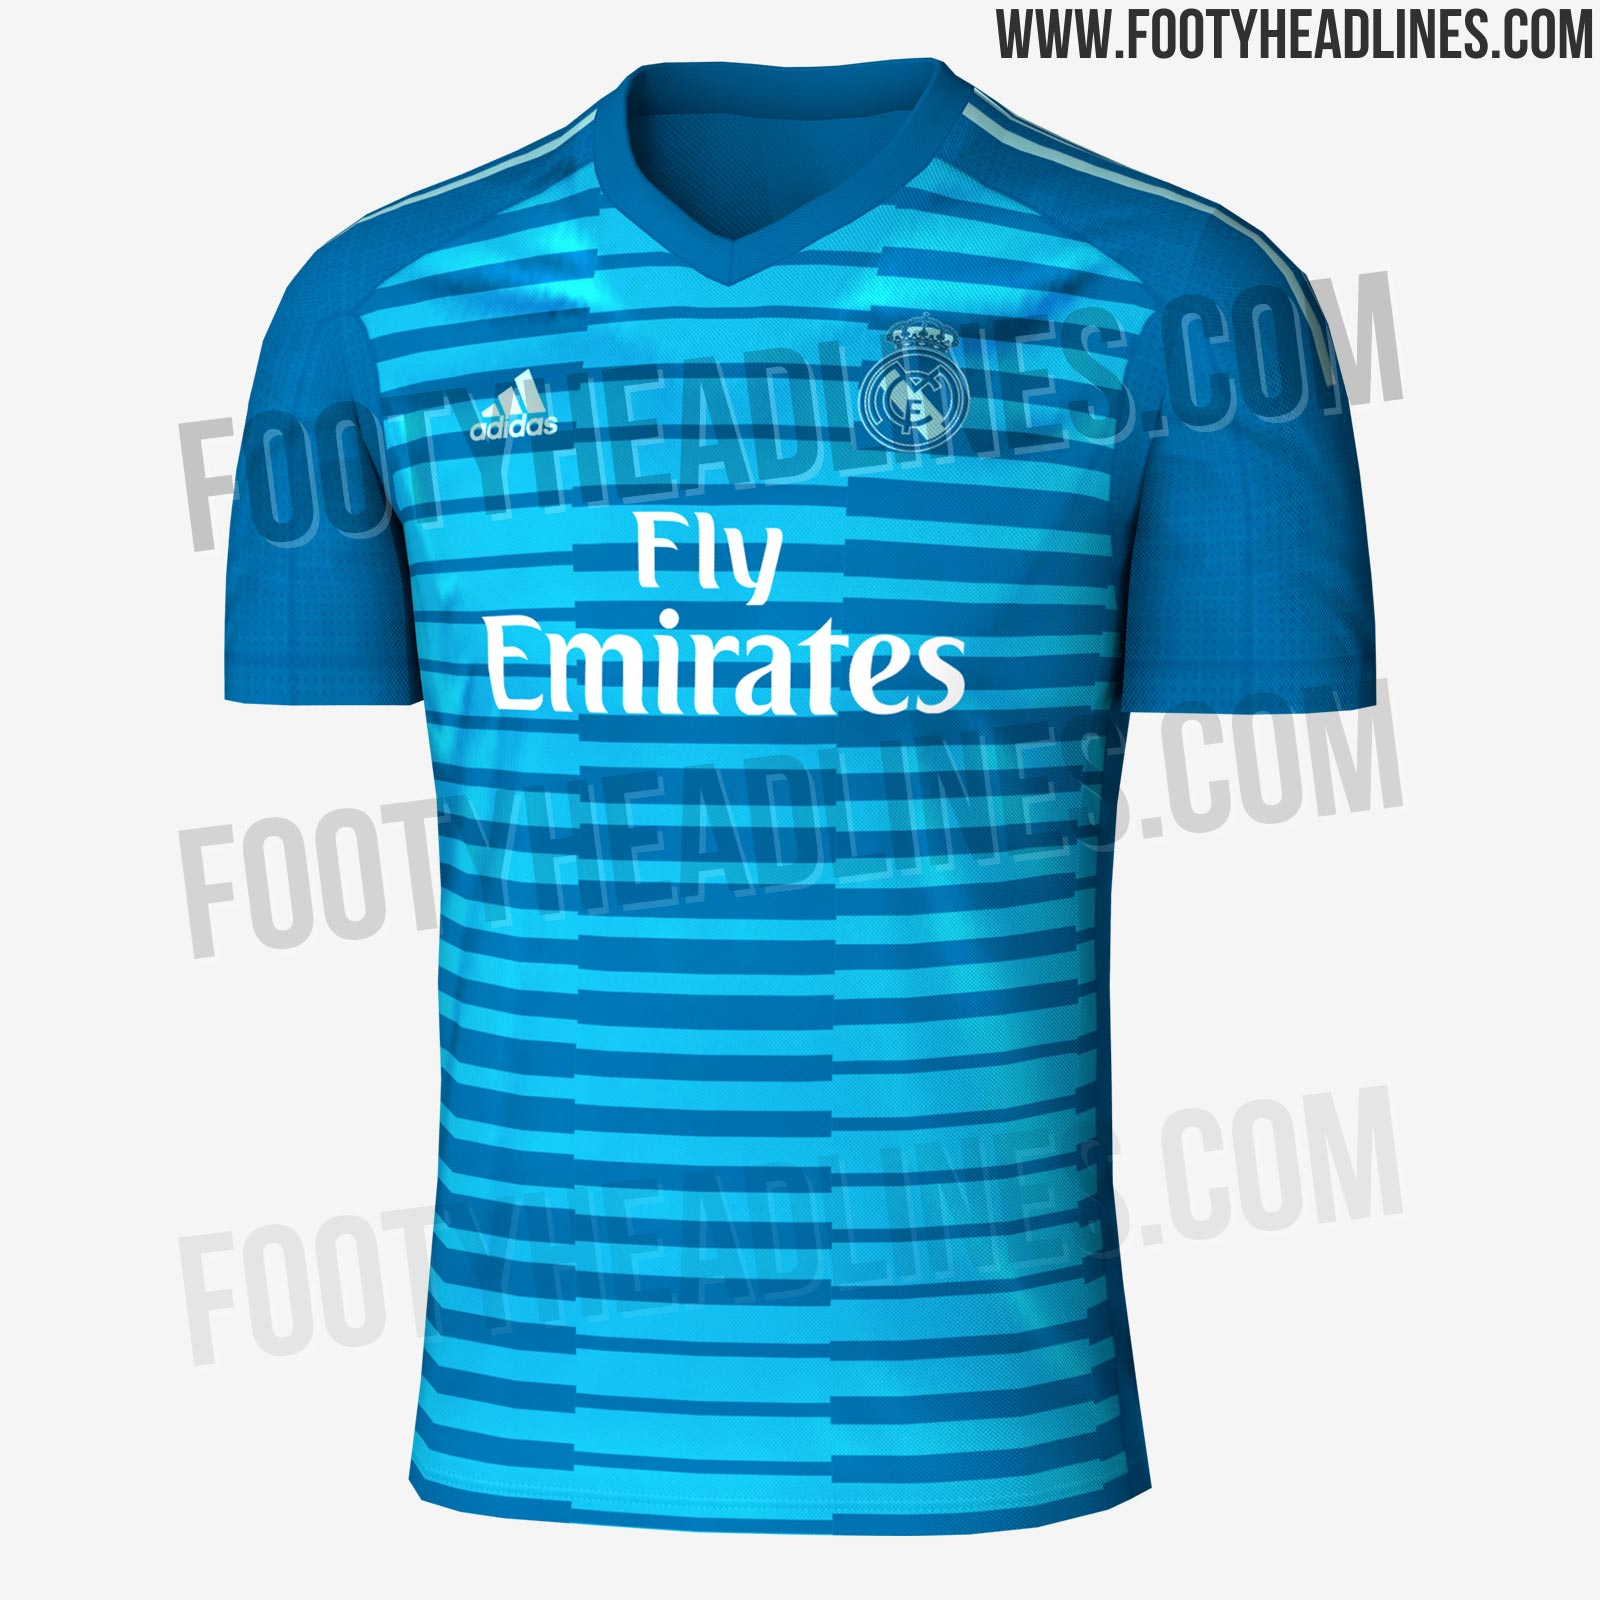 fea835d00 The goalkeeper away kit is more interesting as it combines no less than  three vibrant shades of blue. It s predominantly royal blue